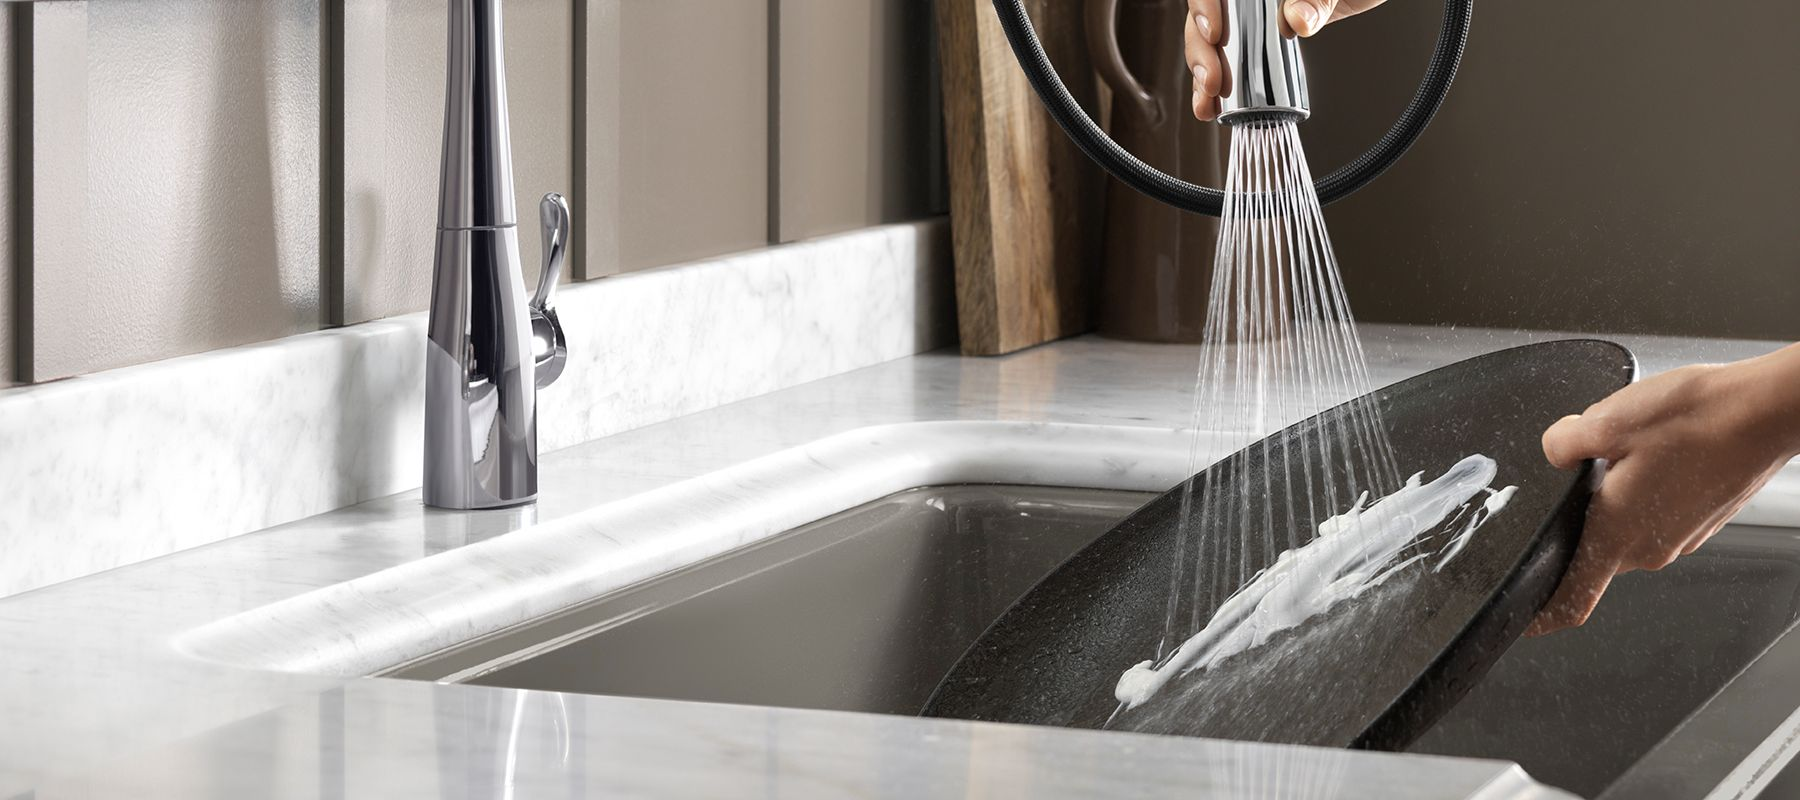 faucet innovations - Kohler Kitchen Sinks